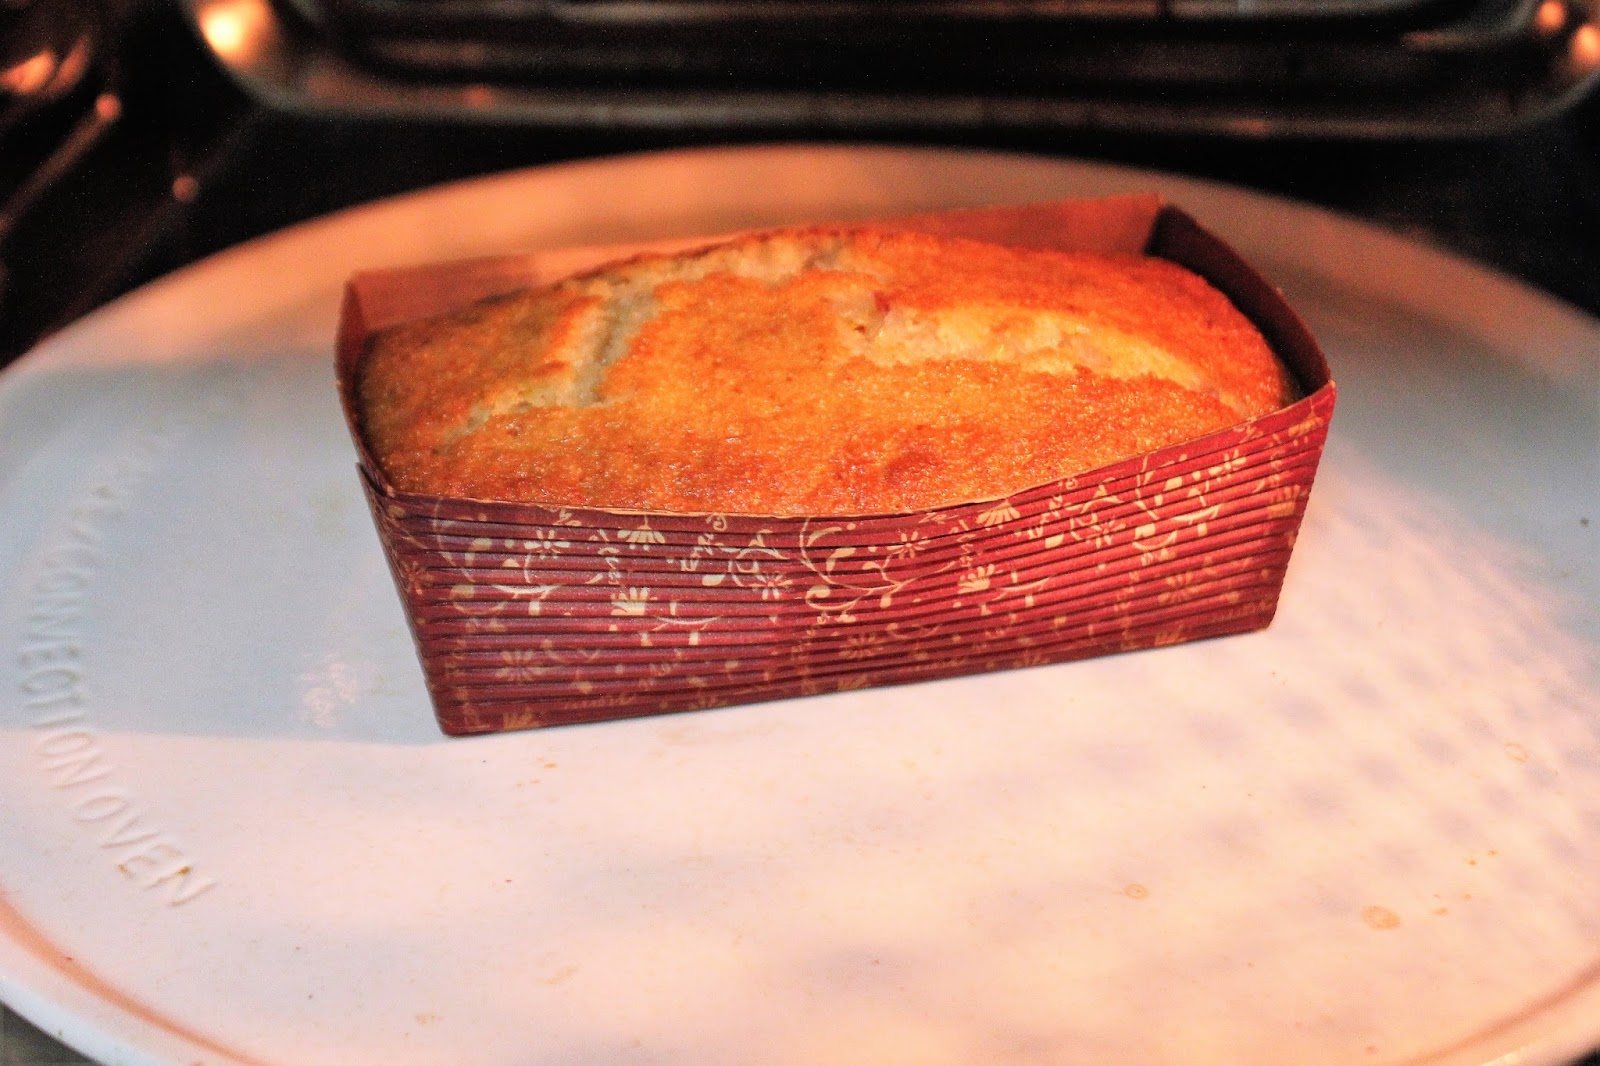 How To Bake A Cake In Microwave Convection Mode